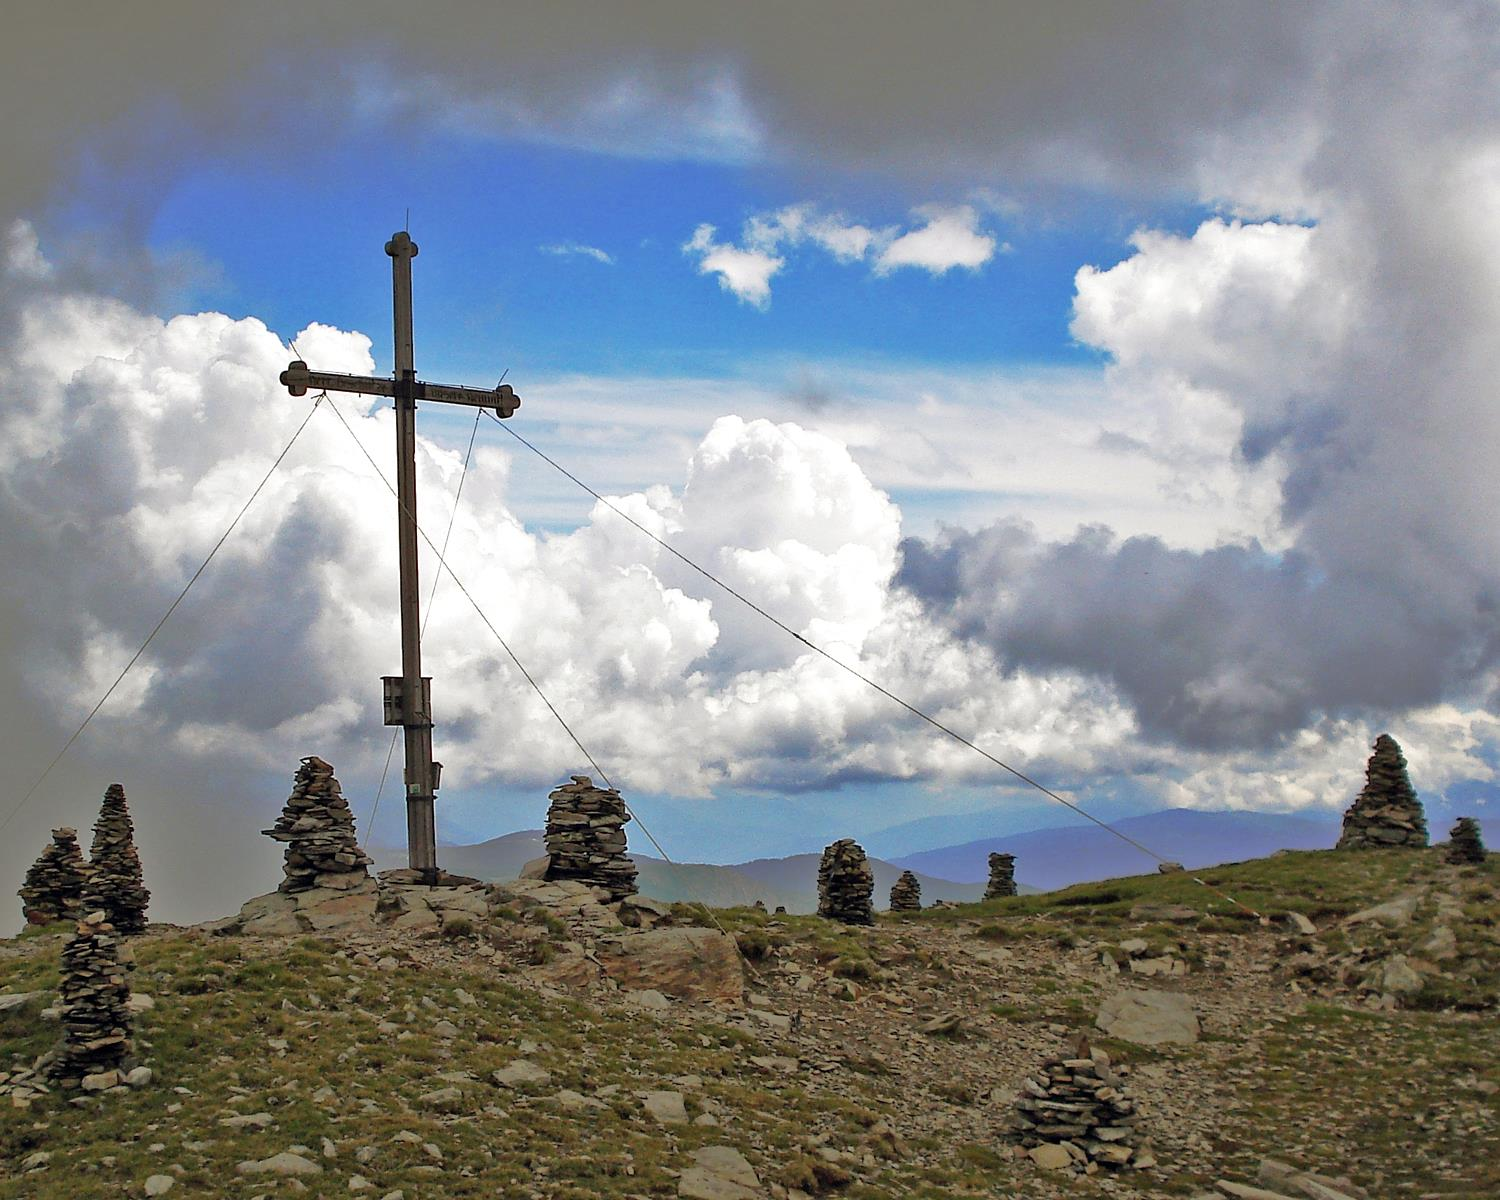 From Stilfes to the Zinseler summit